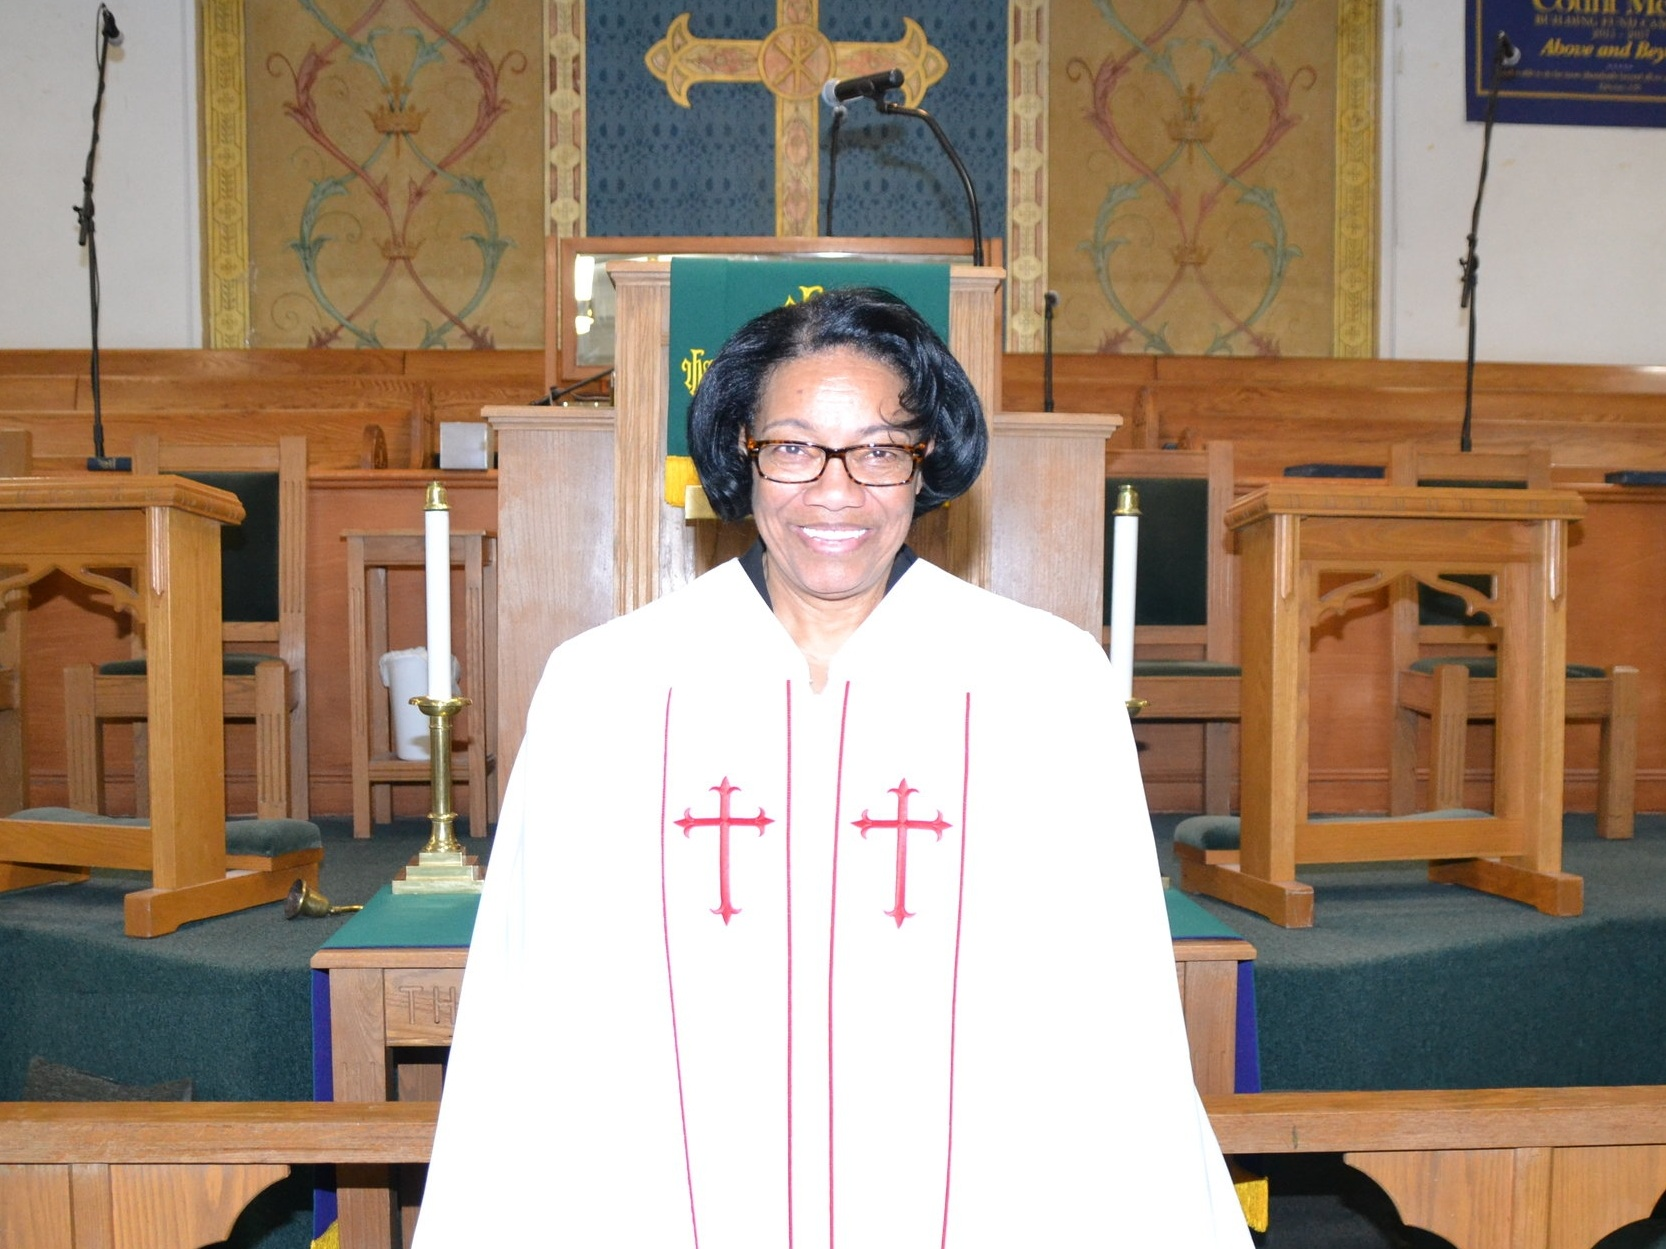 Rev. Diane Haggan - Rev. Haggan serves as a Local Deacon at Mt. Pisgah AME Church. She is also the leader of our Homebound & Recovering Ministry and Women's Ministry.